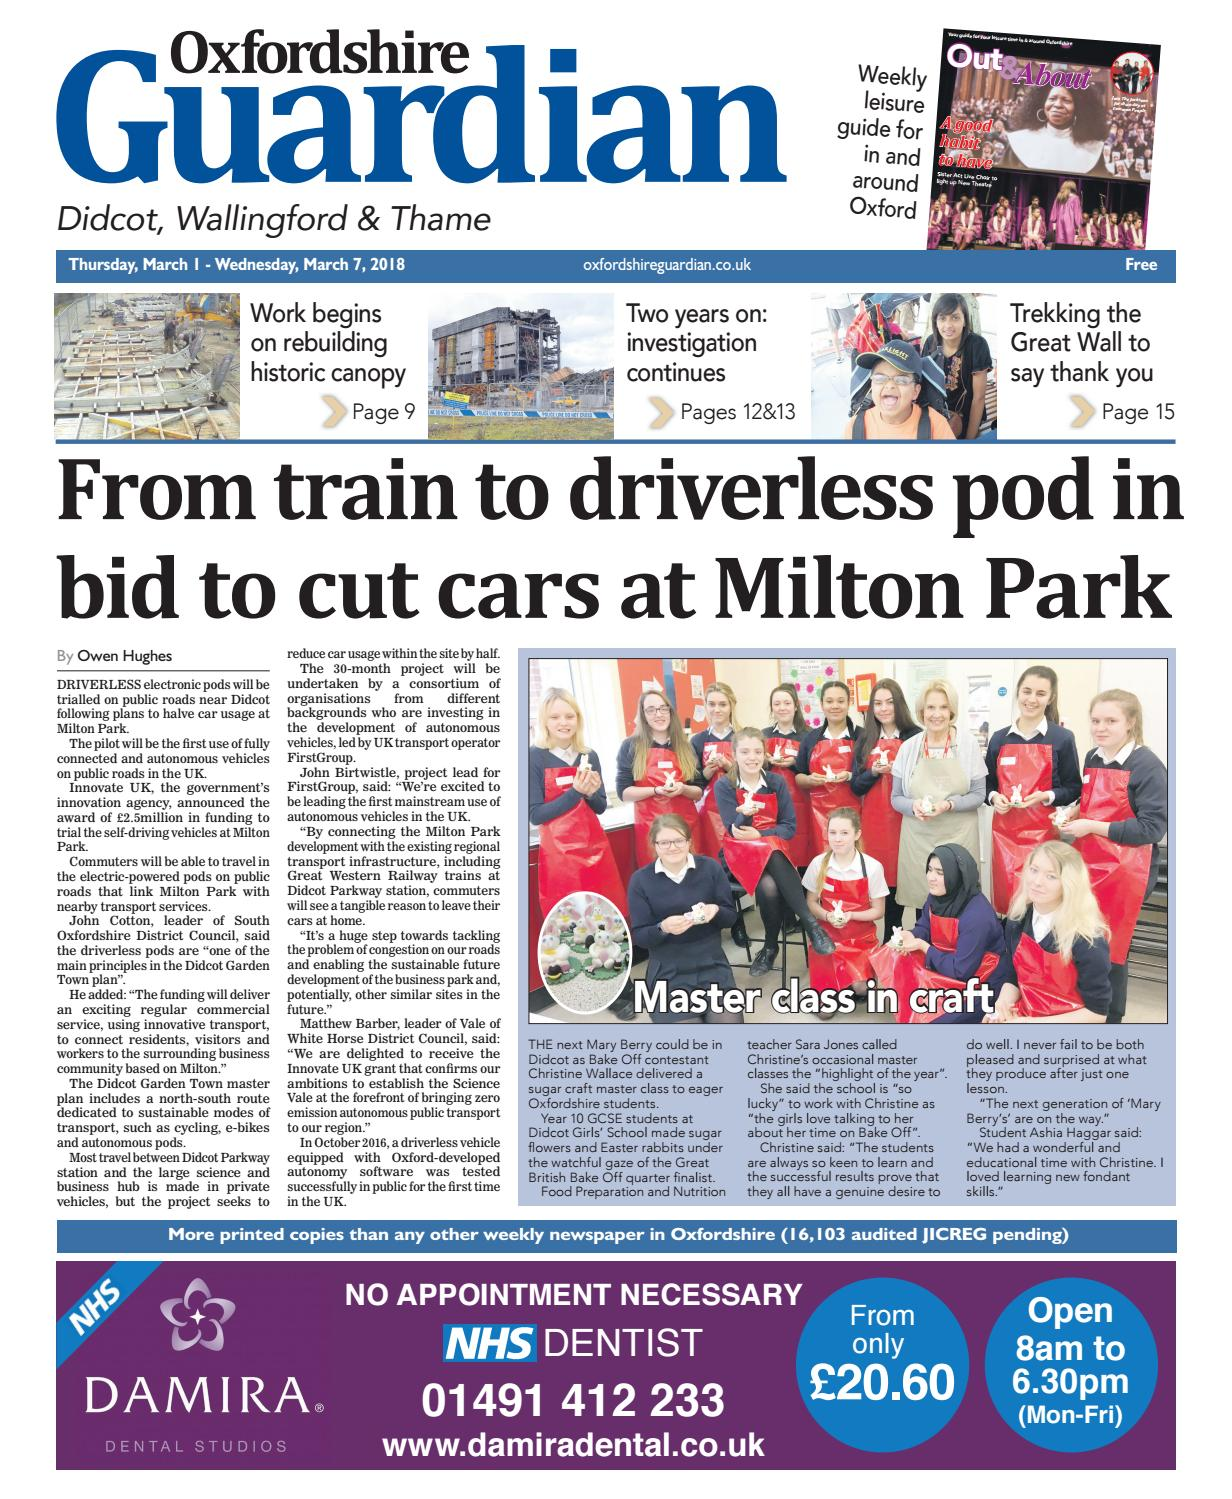 2018 Guardian Newspapers 01 Issuu By Taylor Didcot March Oxfordshire Z80ONnwkXP